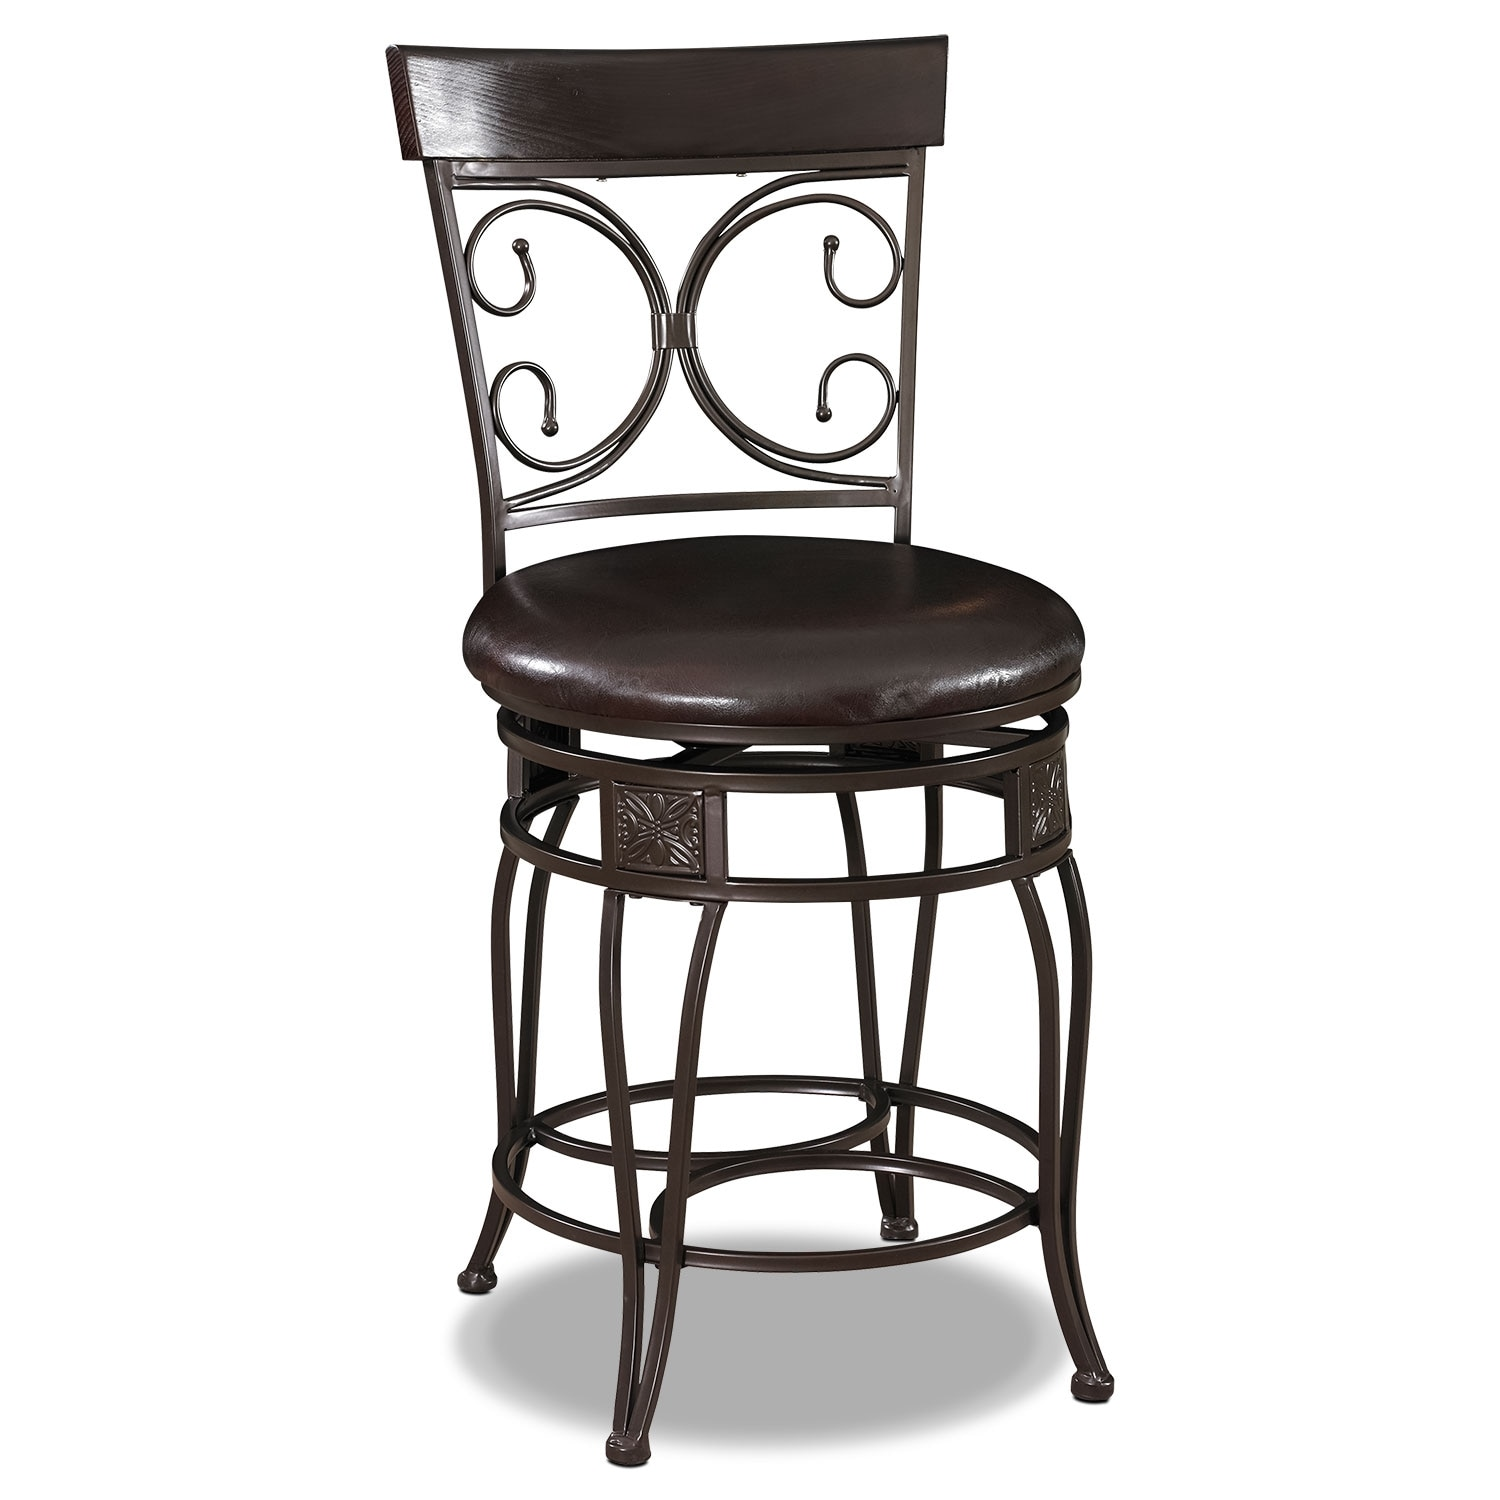 Grandview Counter Height Stool Black Value City Furniture